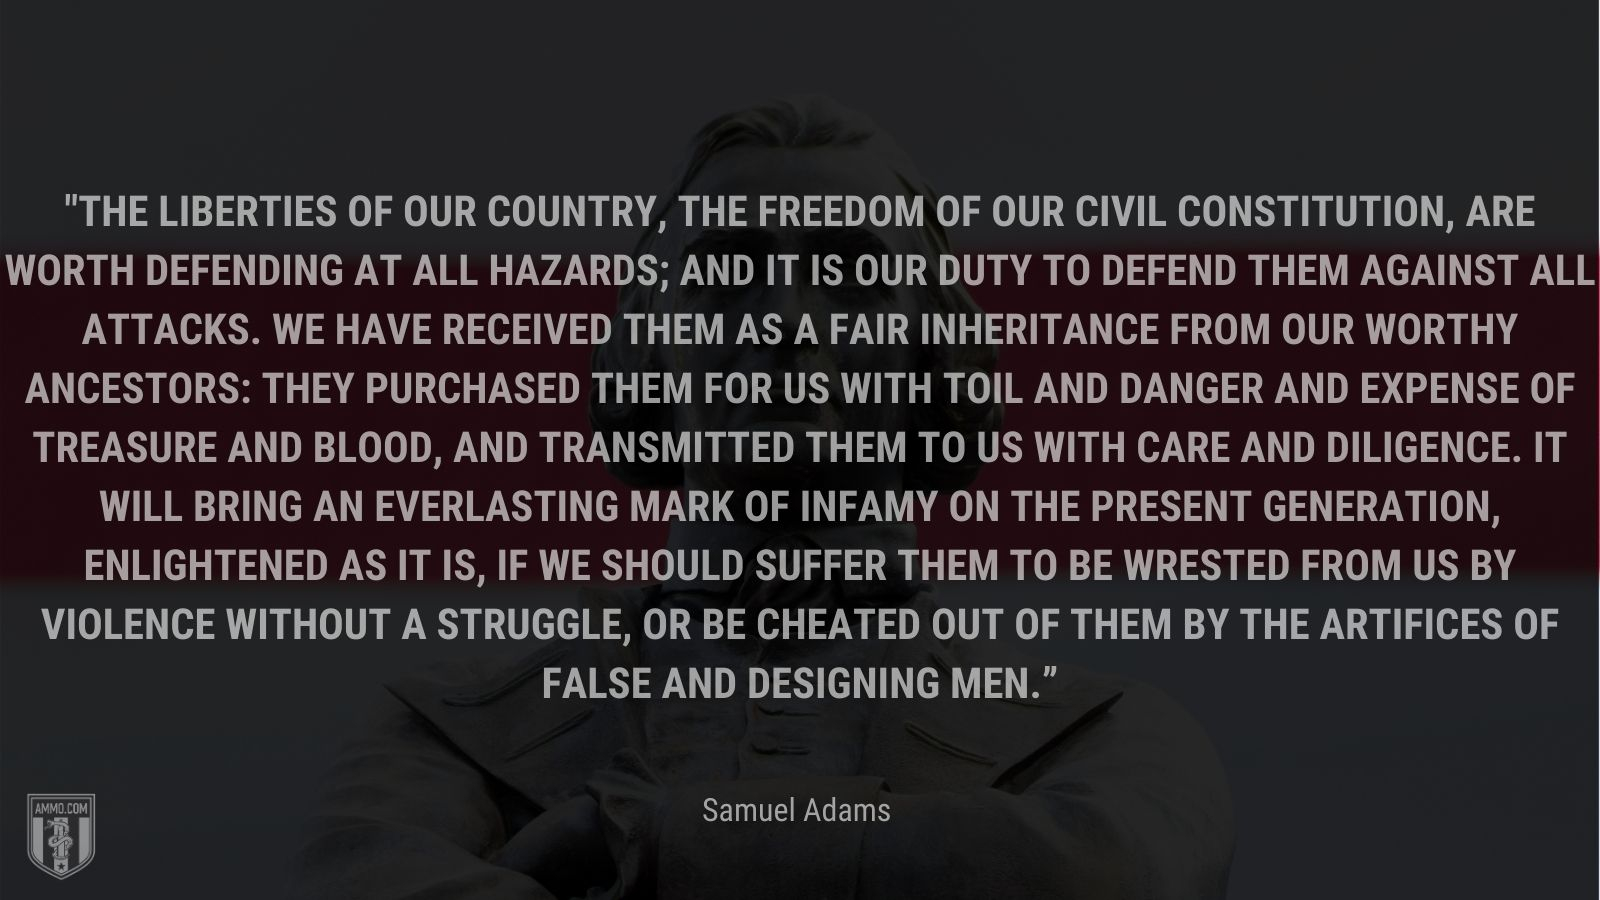 """""""The liberties of our country, the freedom of our civil constitution, are worth defending at all hazards; and it is our duty to defend them against all attacks. We have received them as a fair inheritance from our worthy ancestors: they purchased them for us with toil and danger and expense of treasure and blood, and transmitted them to us with care and diligence. It will bring an everlasting mark of infamy on the present generation, enlightened as it is, if we should suffer them to be wrested from us by violence without a struggle, or be cheated out of them by the artifices of false and designing men."""" - Samuel Adams"""